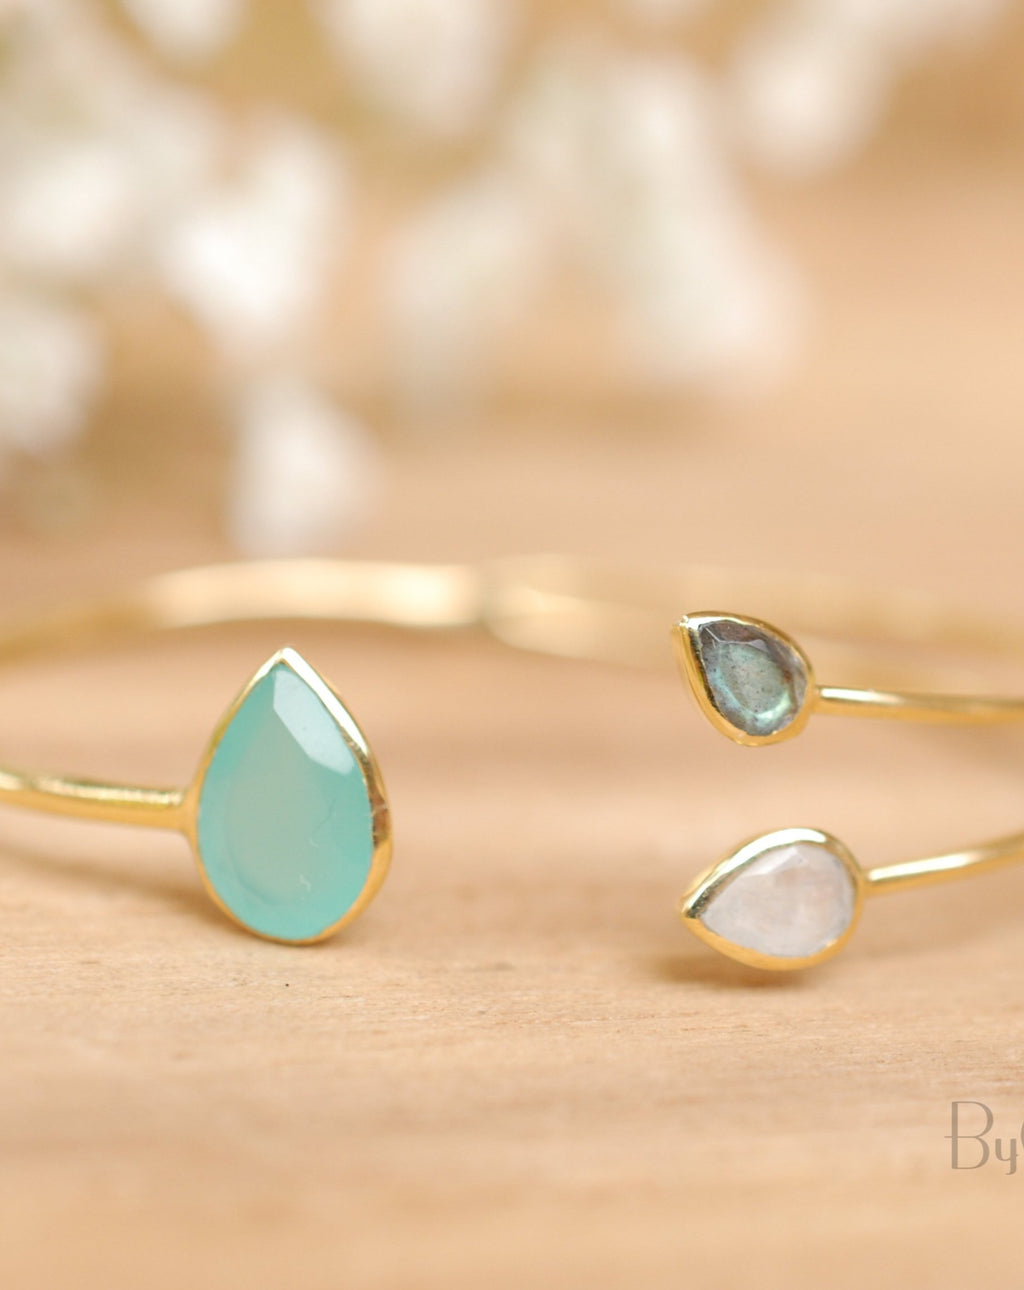 Aqua Chalcedony,Labradorite & Moonstone Bangle Bracelet * Gold Plated or Silver Plated* Gemstone * Adjustable * Stacking *Layering BJB023A